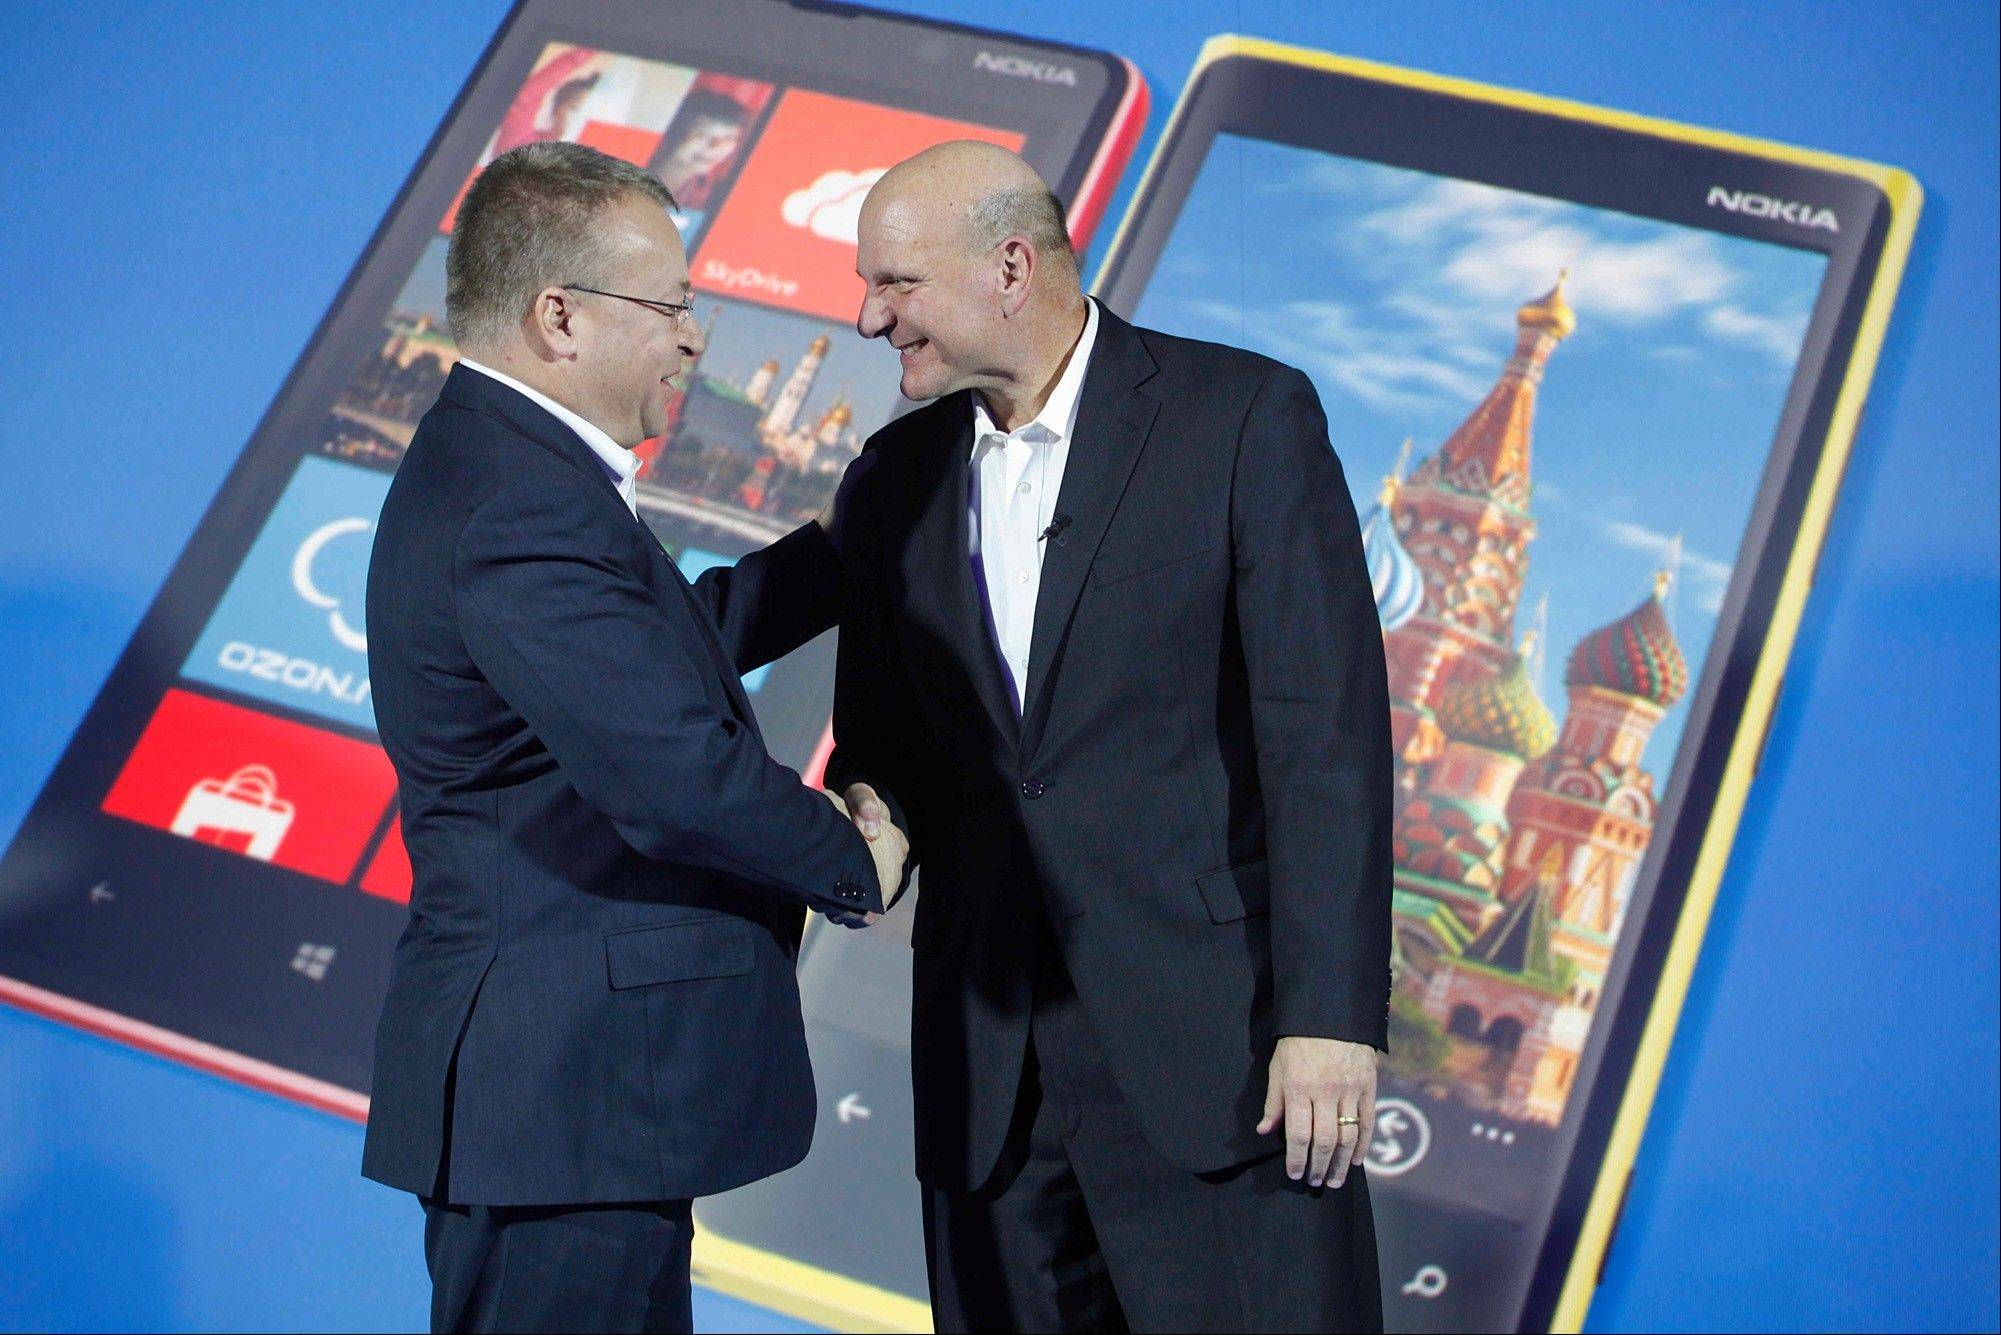 Nokia CEO Stephen Elop, left, and Microsoft CEO Steve Ballmer shake hands at a news conference in Moscow in November.